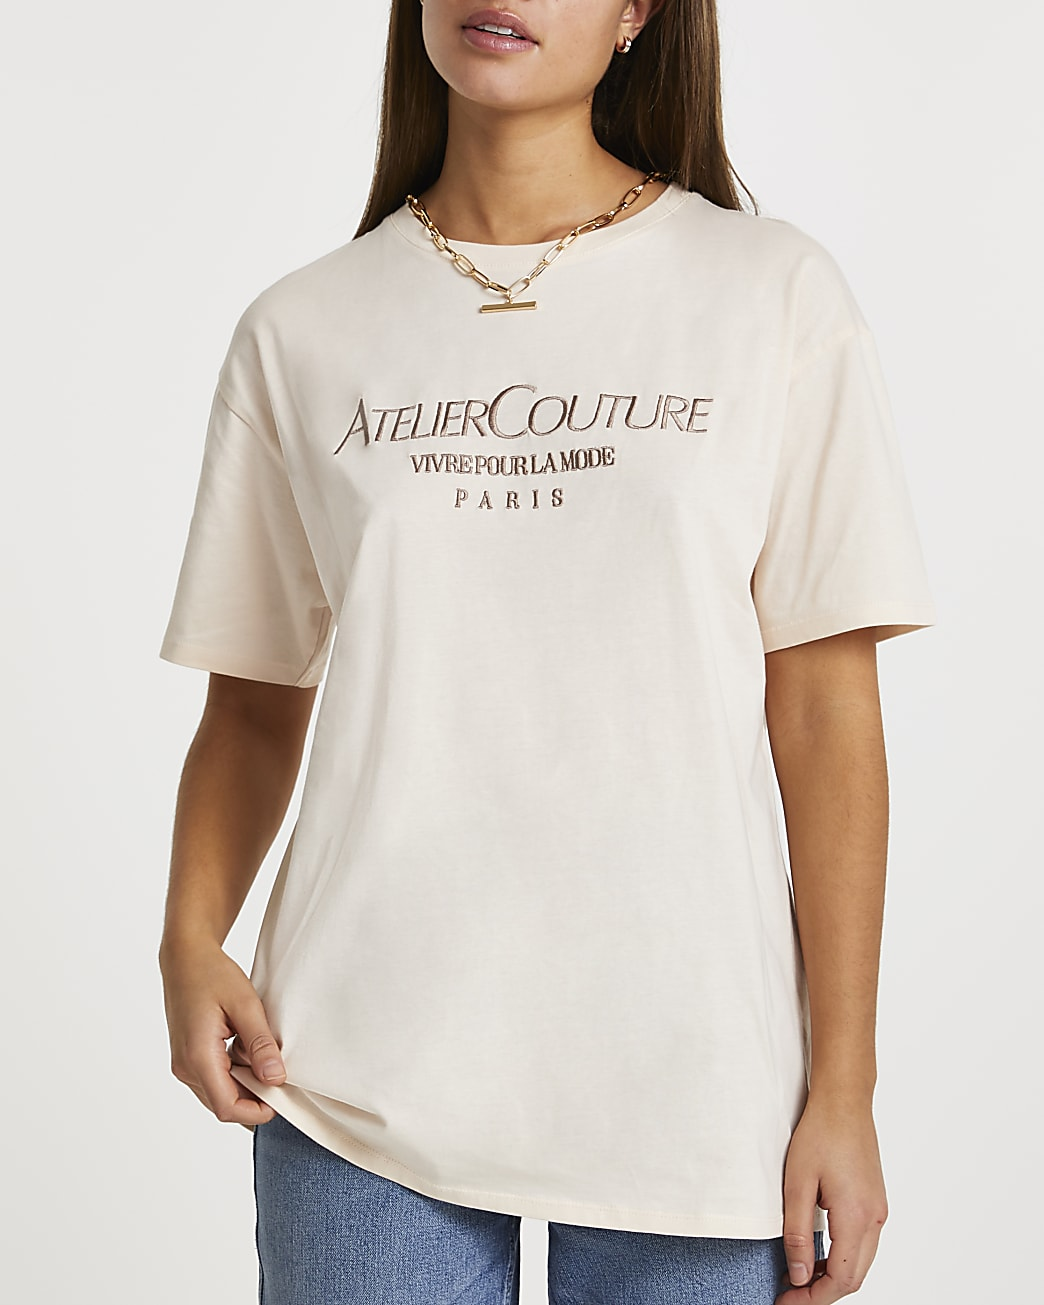 Beige 'Atelier Couture' oversized t-shirt